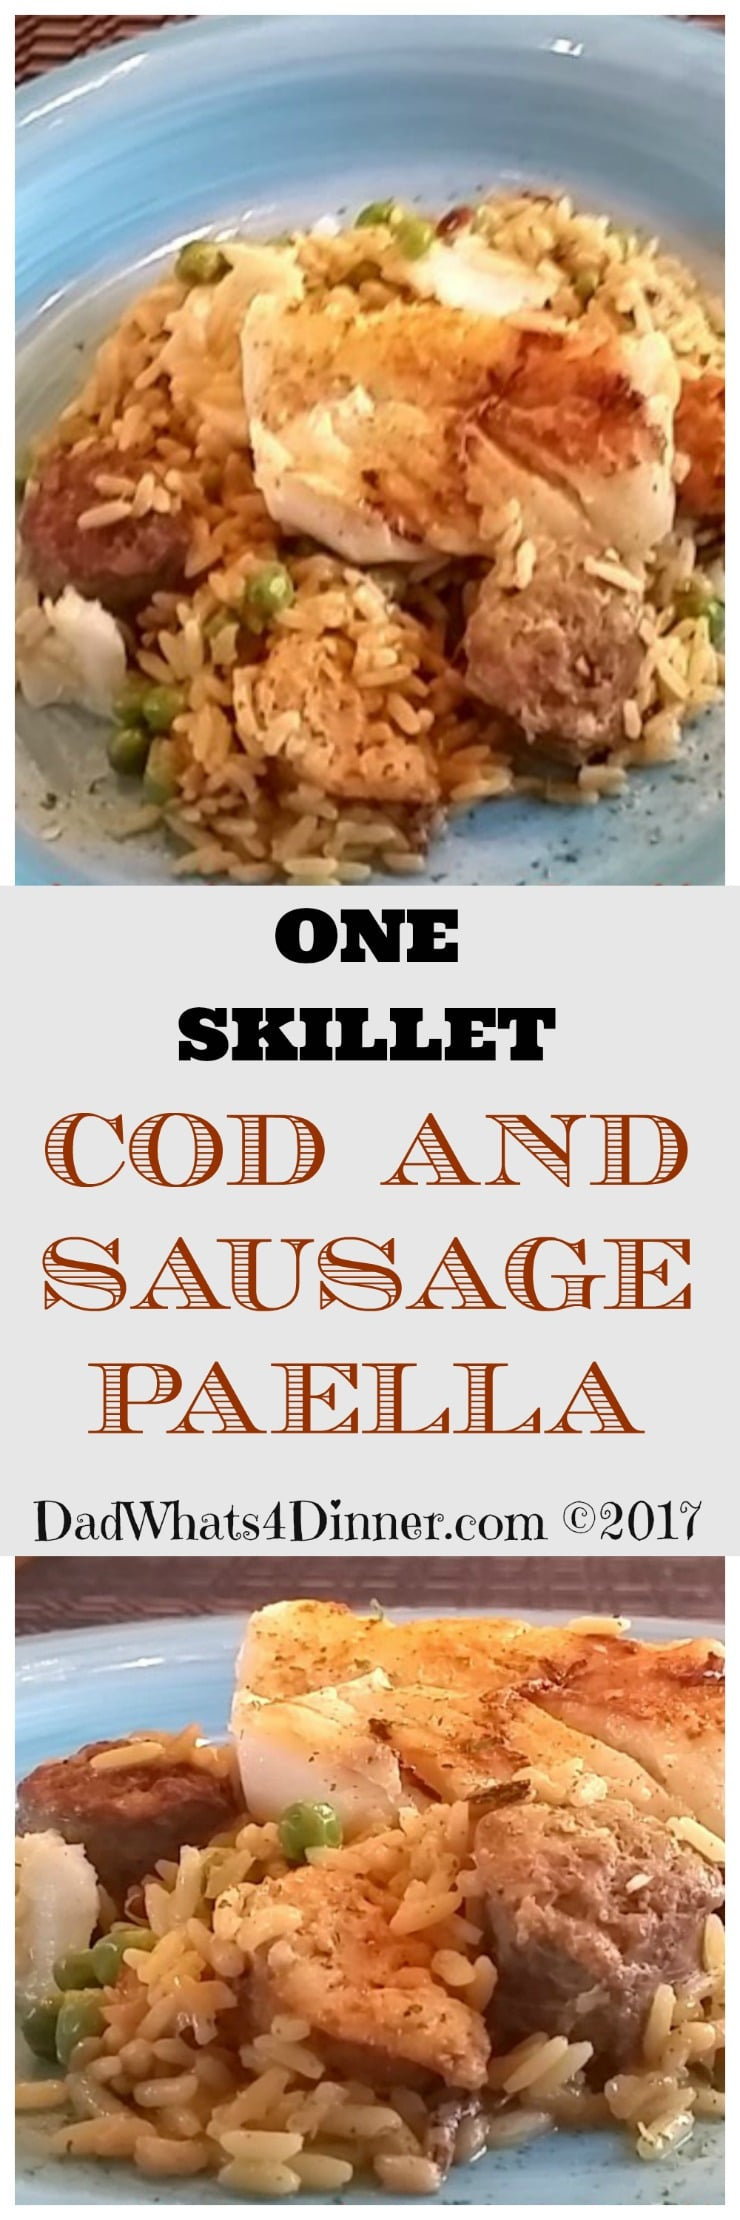 One Skillet Cod and Sausage Paella is a 40 minute dish, start to finish. Perfect for a Lenten meal just leave out the chorizo.